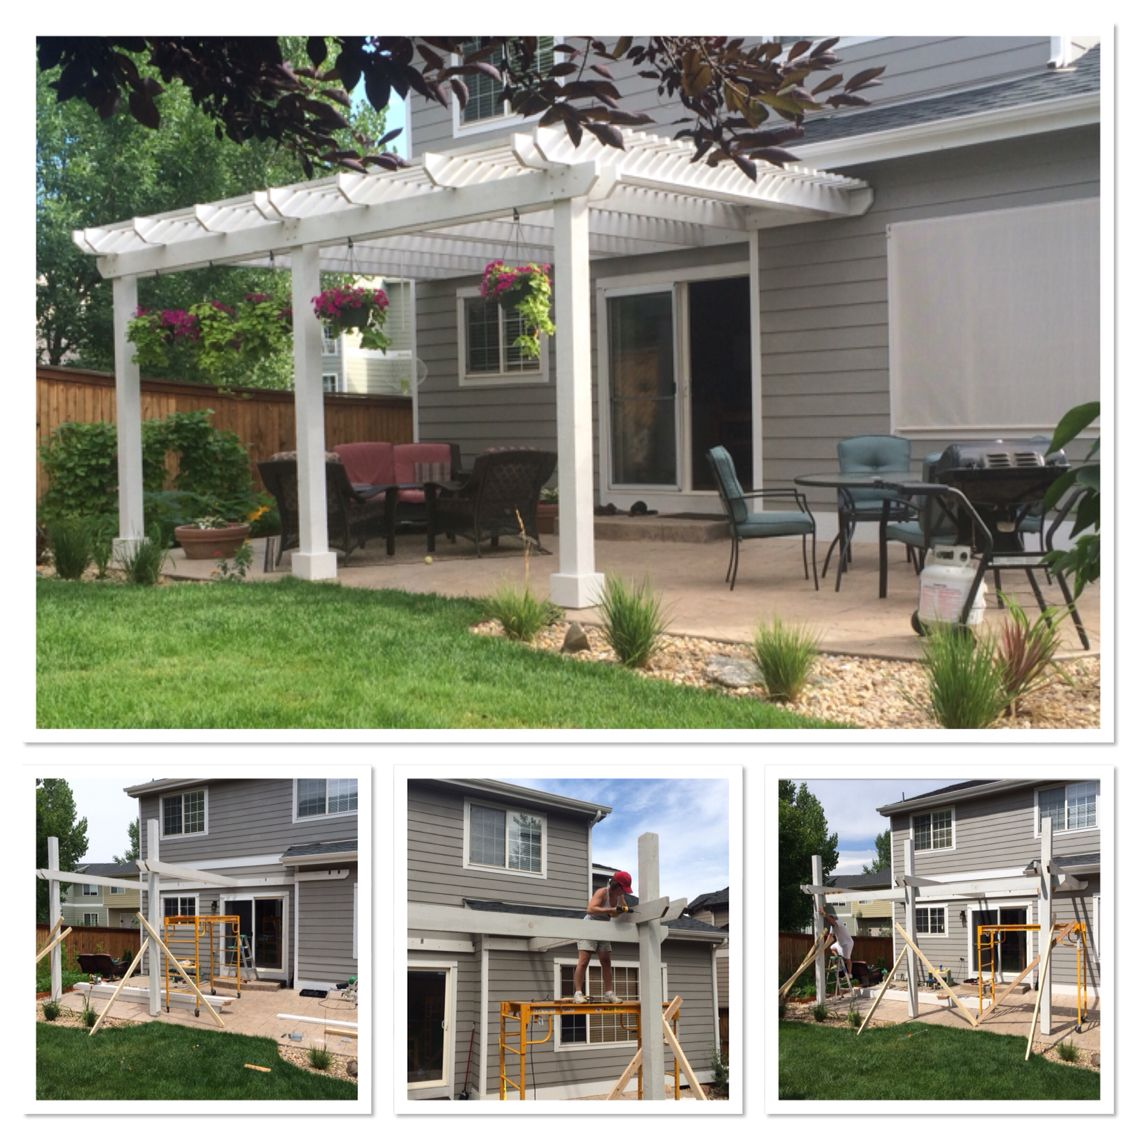 we designed and built this pergola out of rough sawn western red